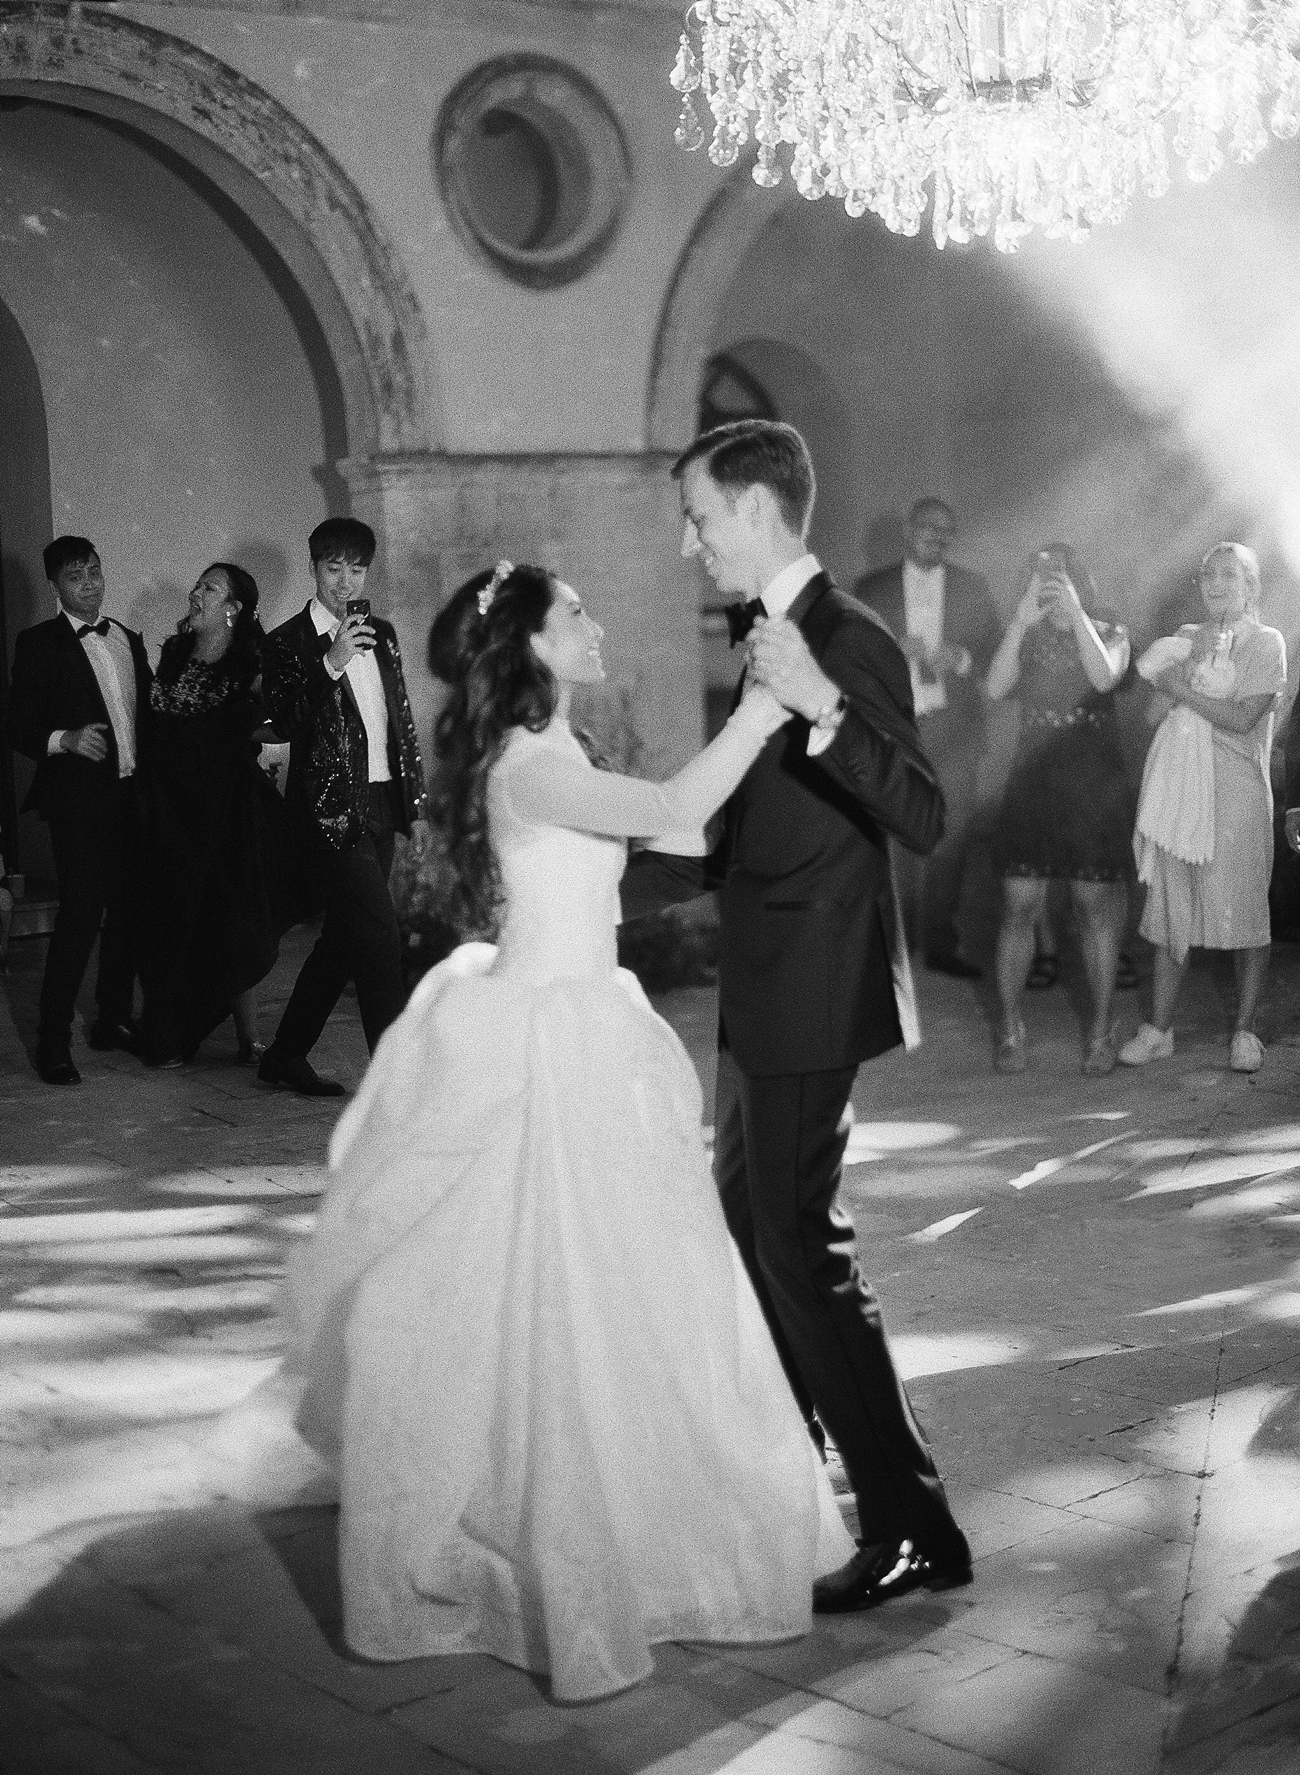 bride and groom share first dance during reception